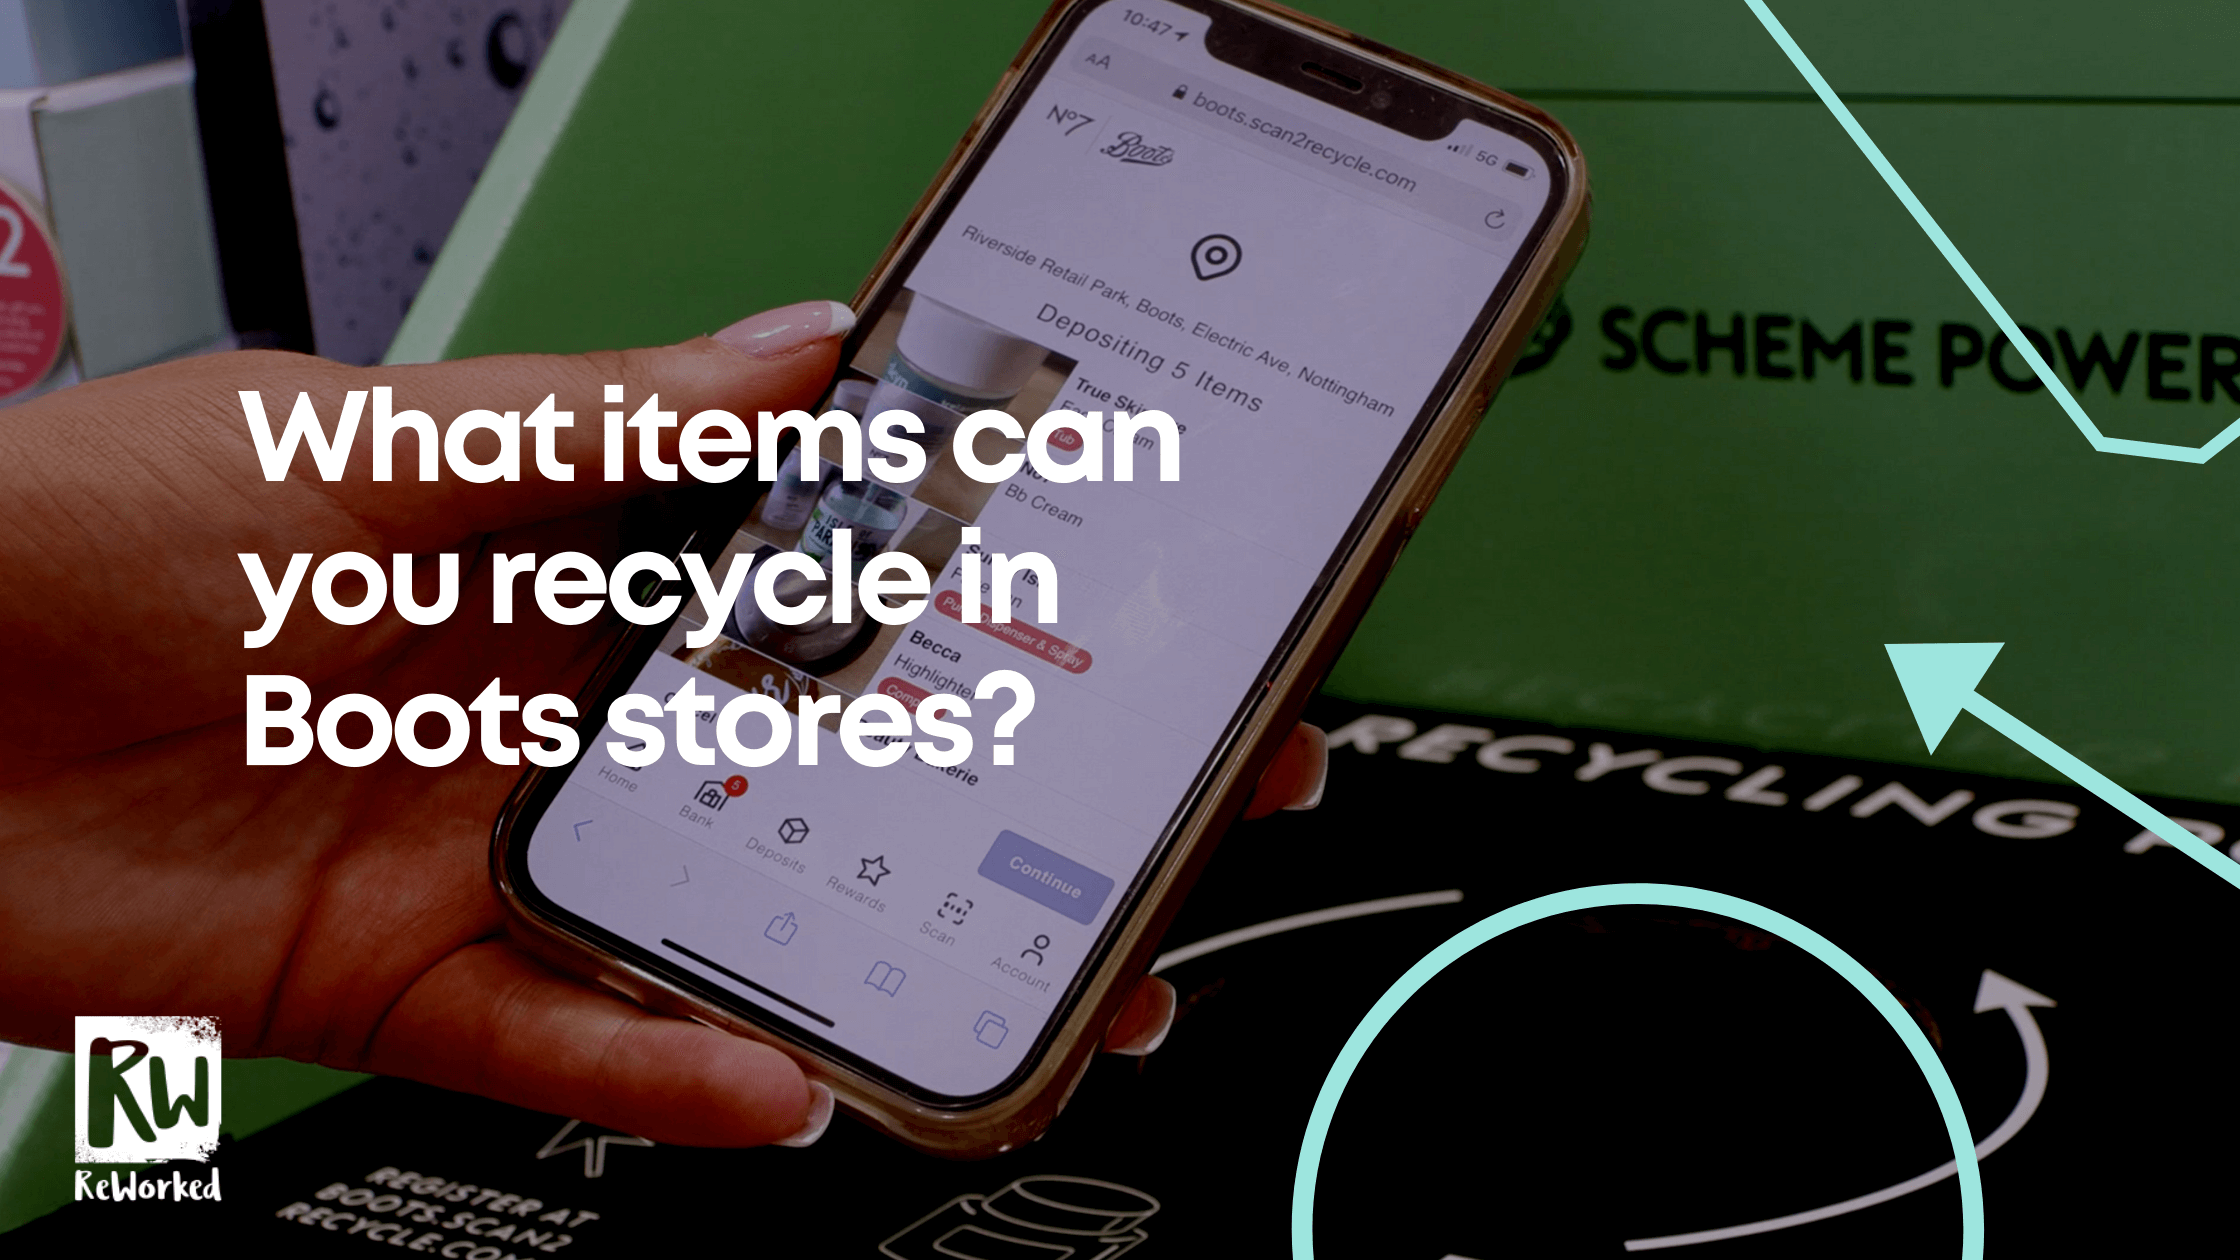 What items can you recycle in Boots stores?